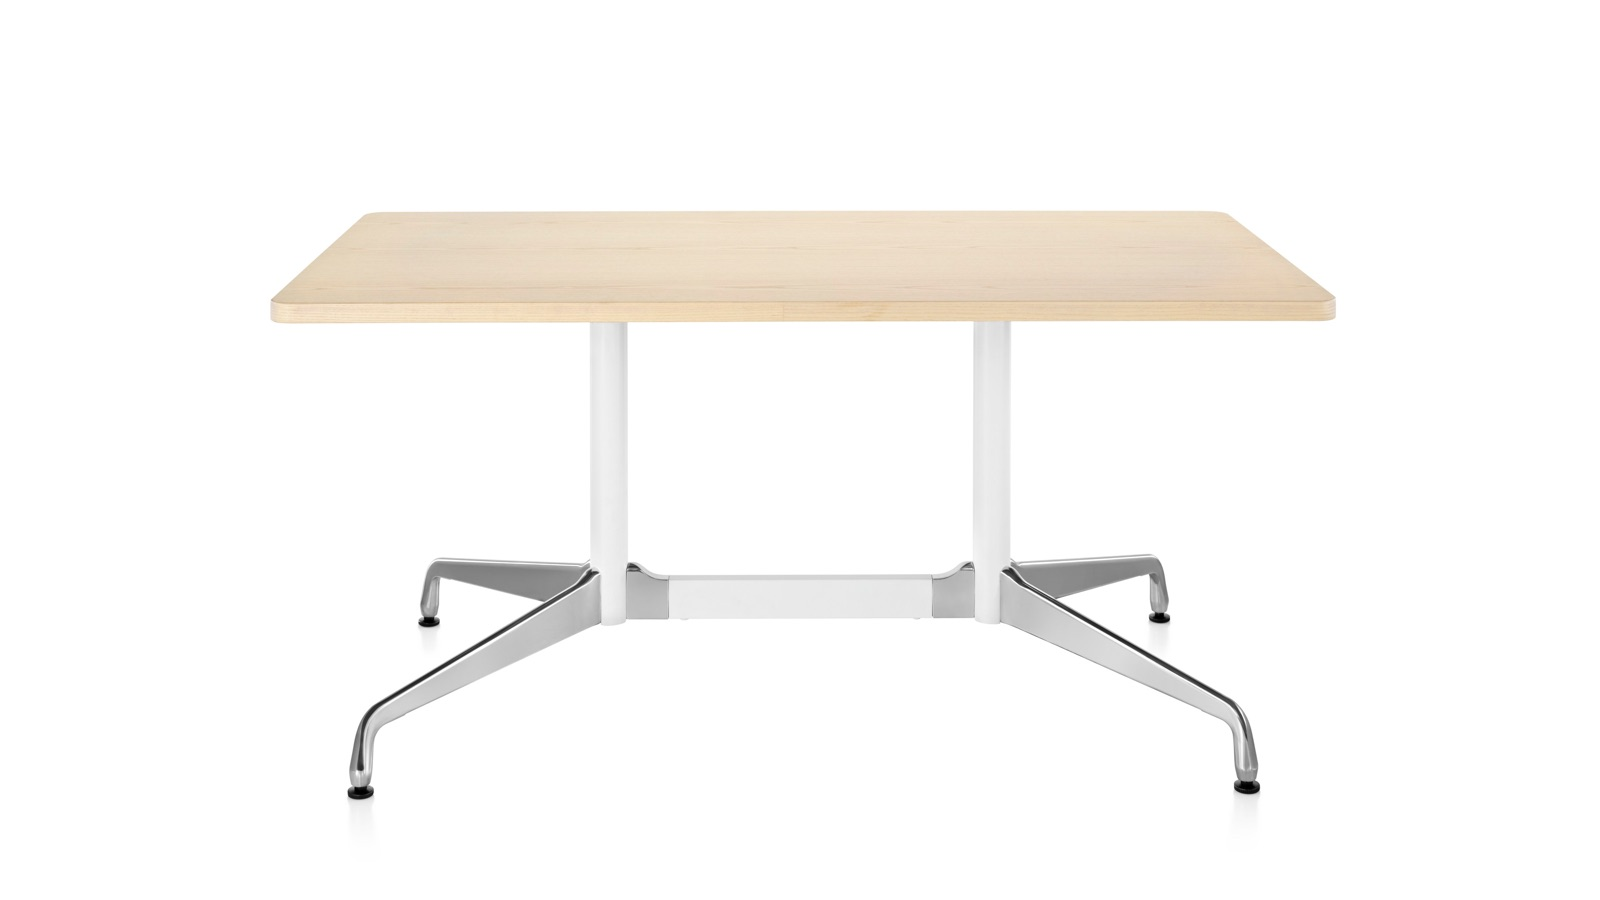 White sweep image of an Eames Conference Table with rectangular top.